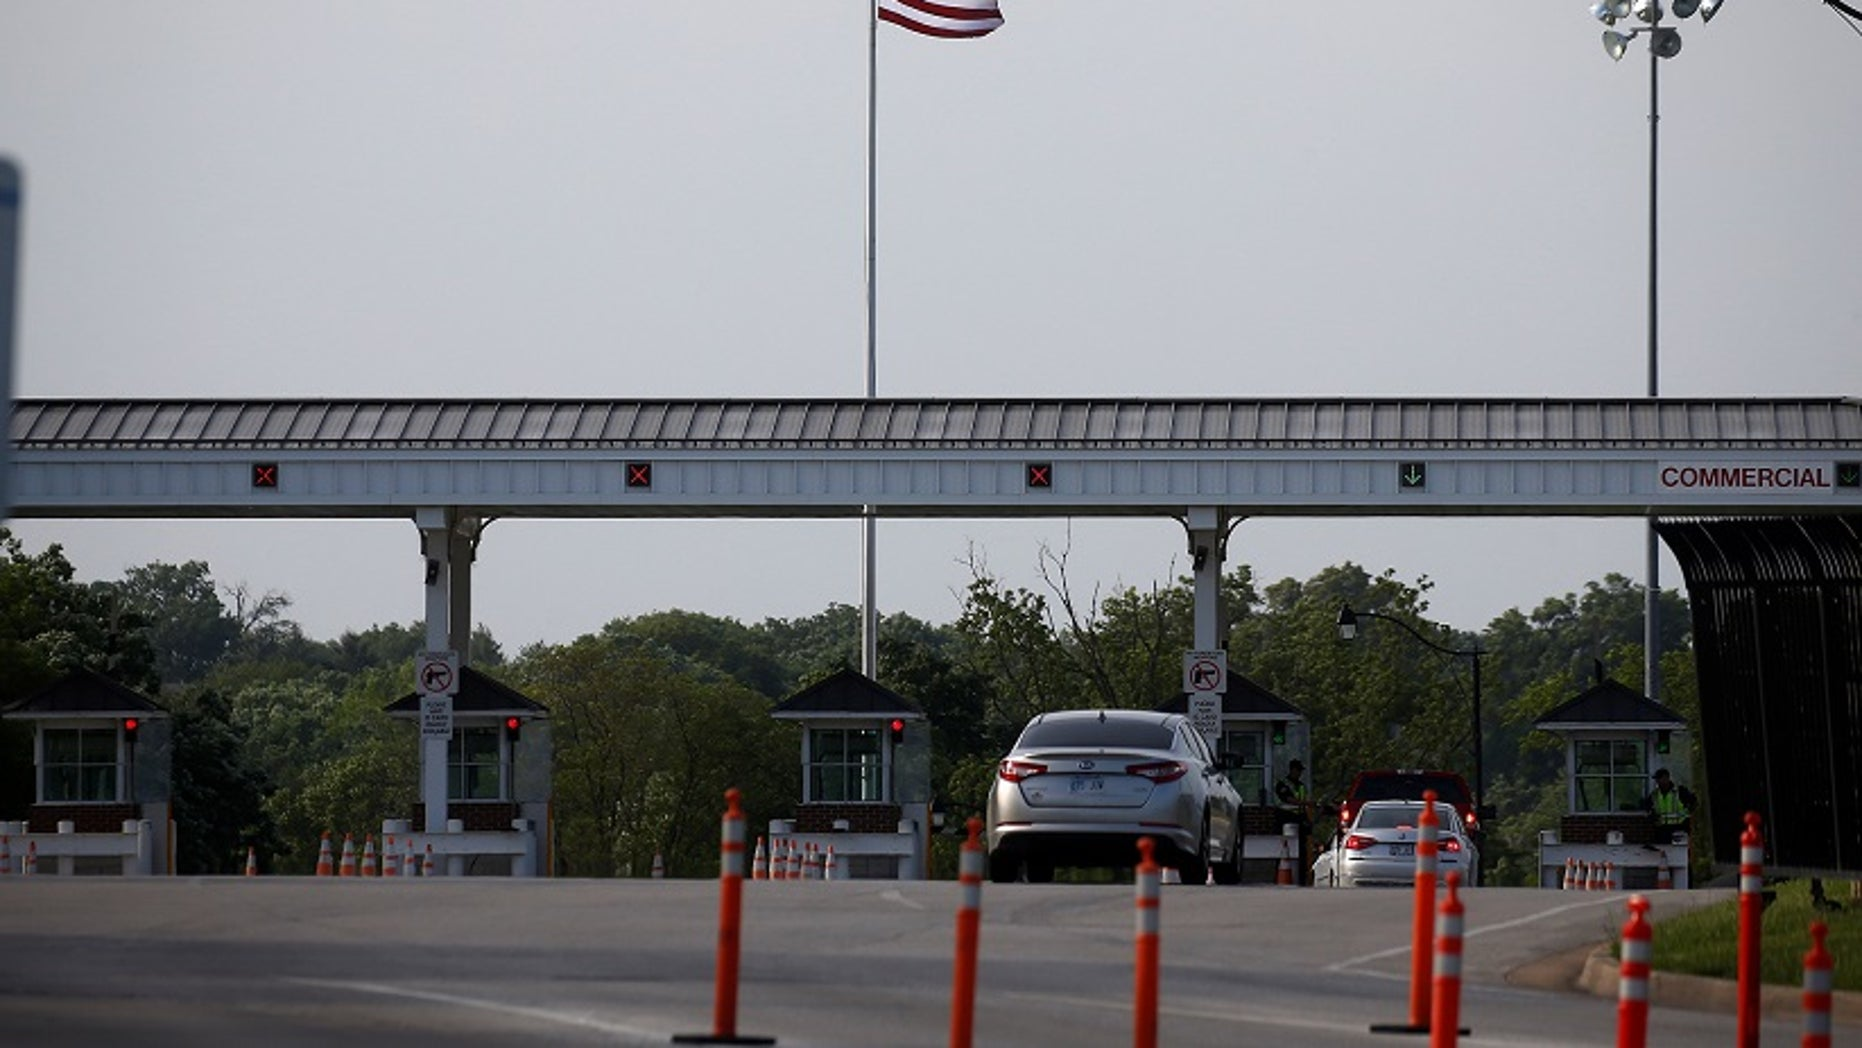 Officials told AP that the federal government is considering housing at military bases those children picked up crossing the U.S. border illegally either alone or after being separated from their parents by the government.